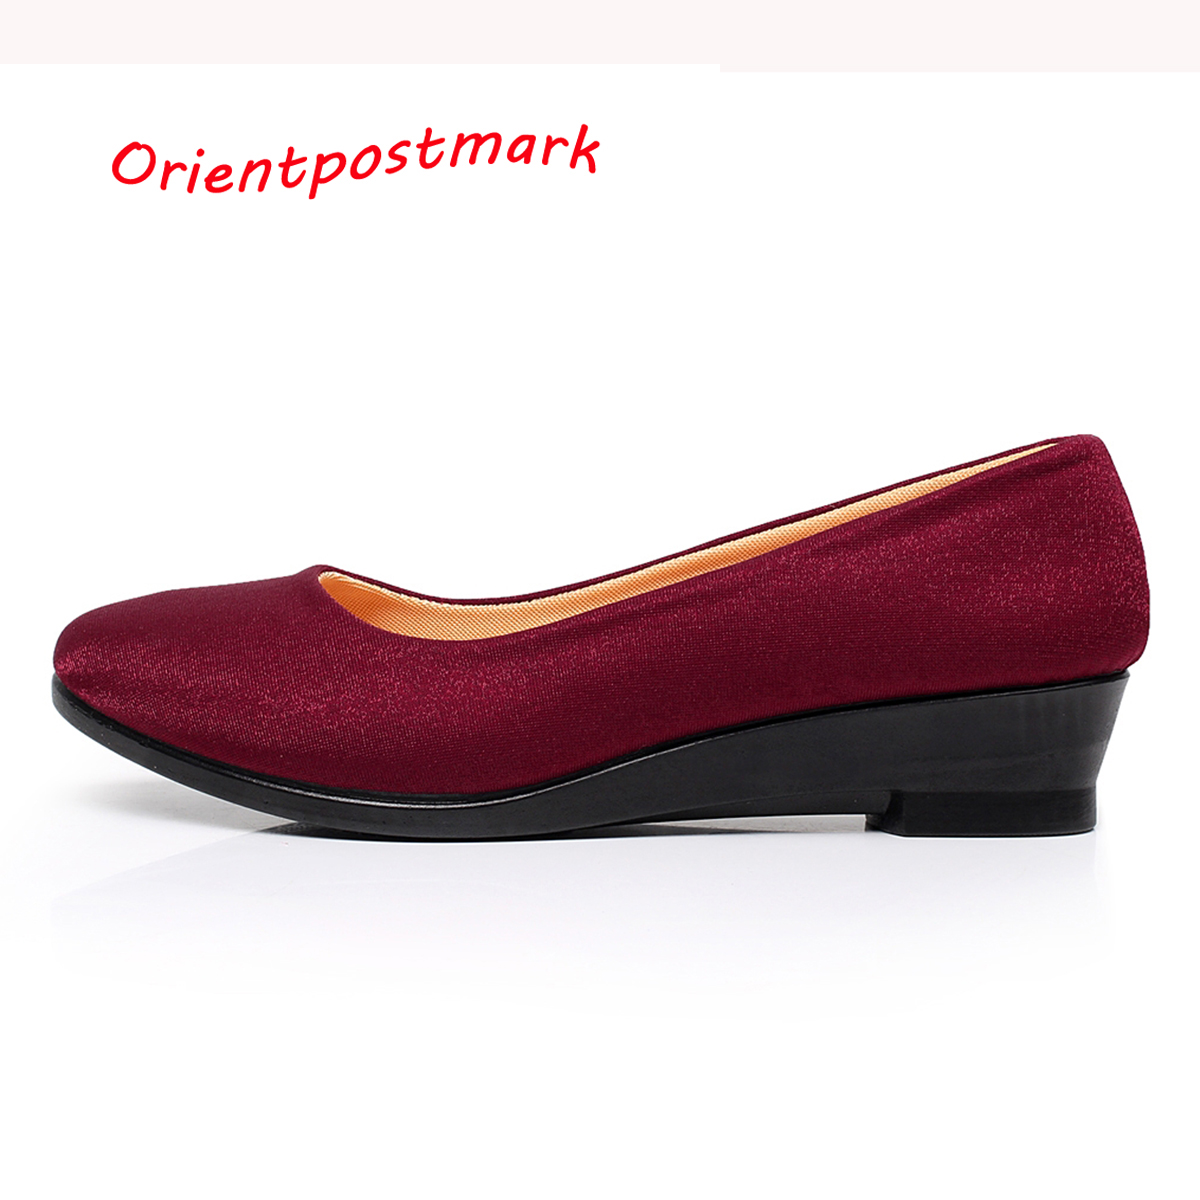 Women Wedges Shoes Women Shoes for Work Cloth Wedges Sweet Loafers Slip On Women's Pregnant Wedges Shoes Oversize Boat Shoes  women shoes women ballet flats shoes for work flats sweet loafers slip on women s pregnant flat shoes oversize boat shoes d35m25